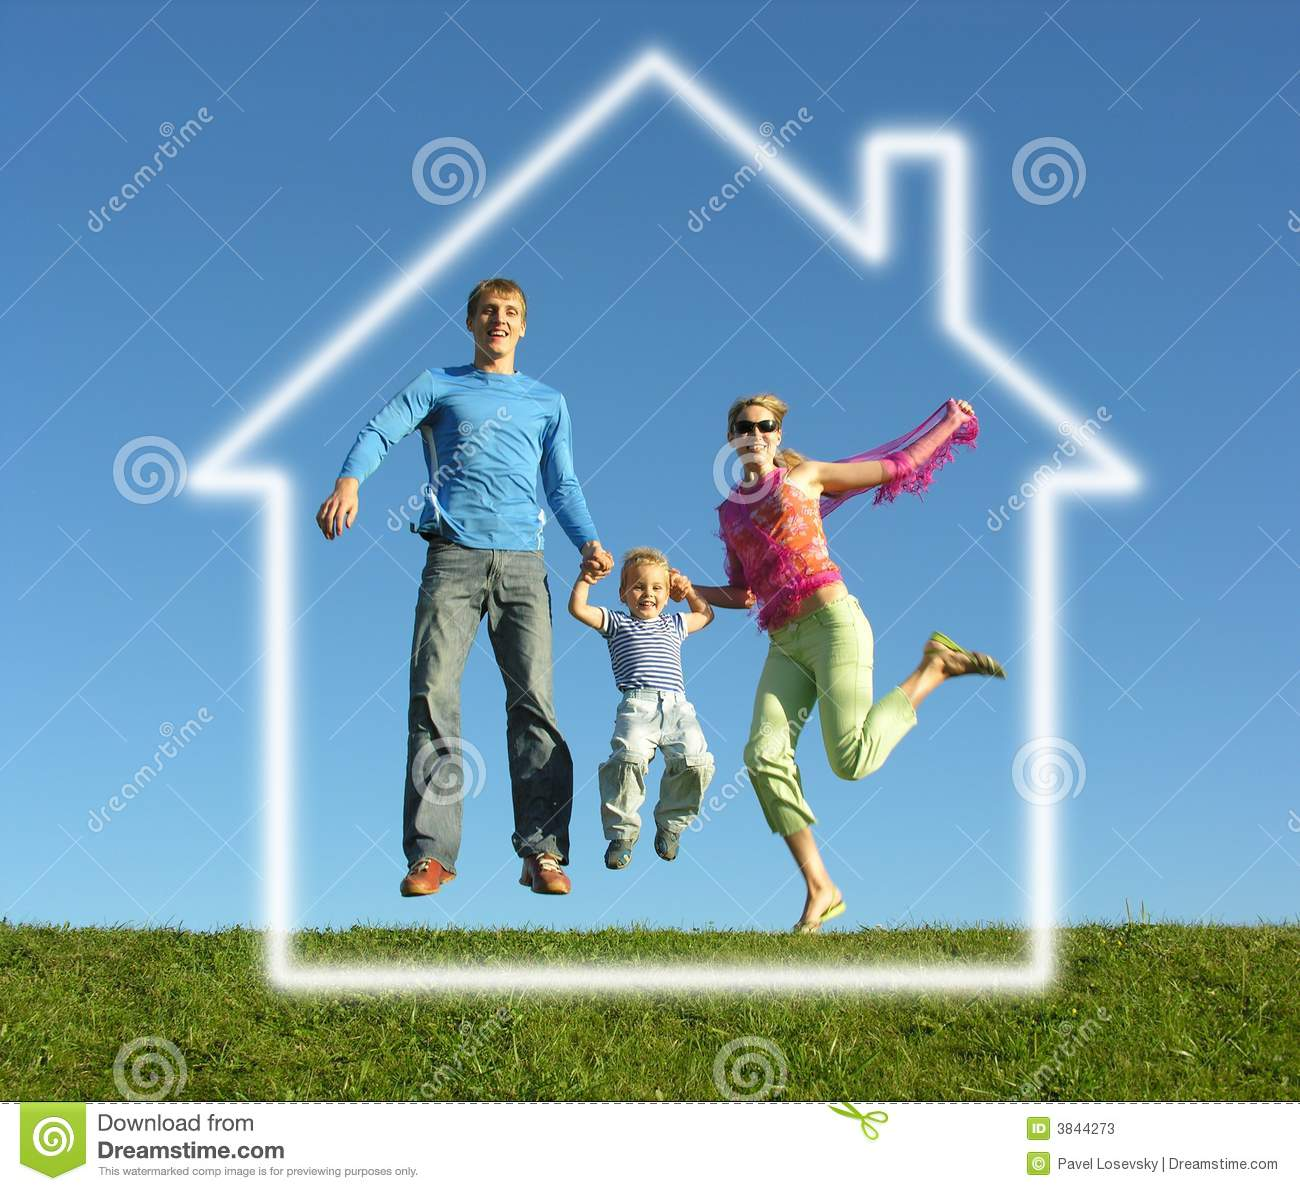 Download Fly Family With Dream House Stock Image - Image of mother, dream: 3844273